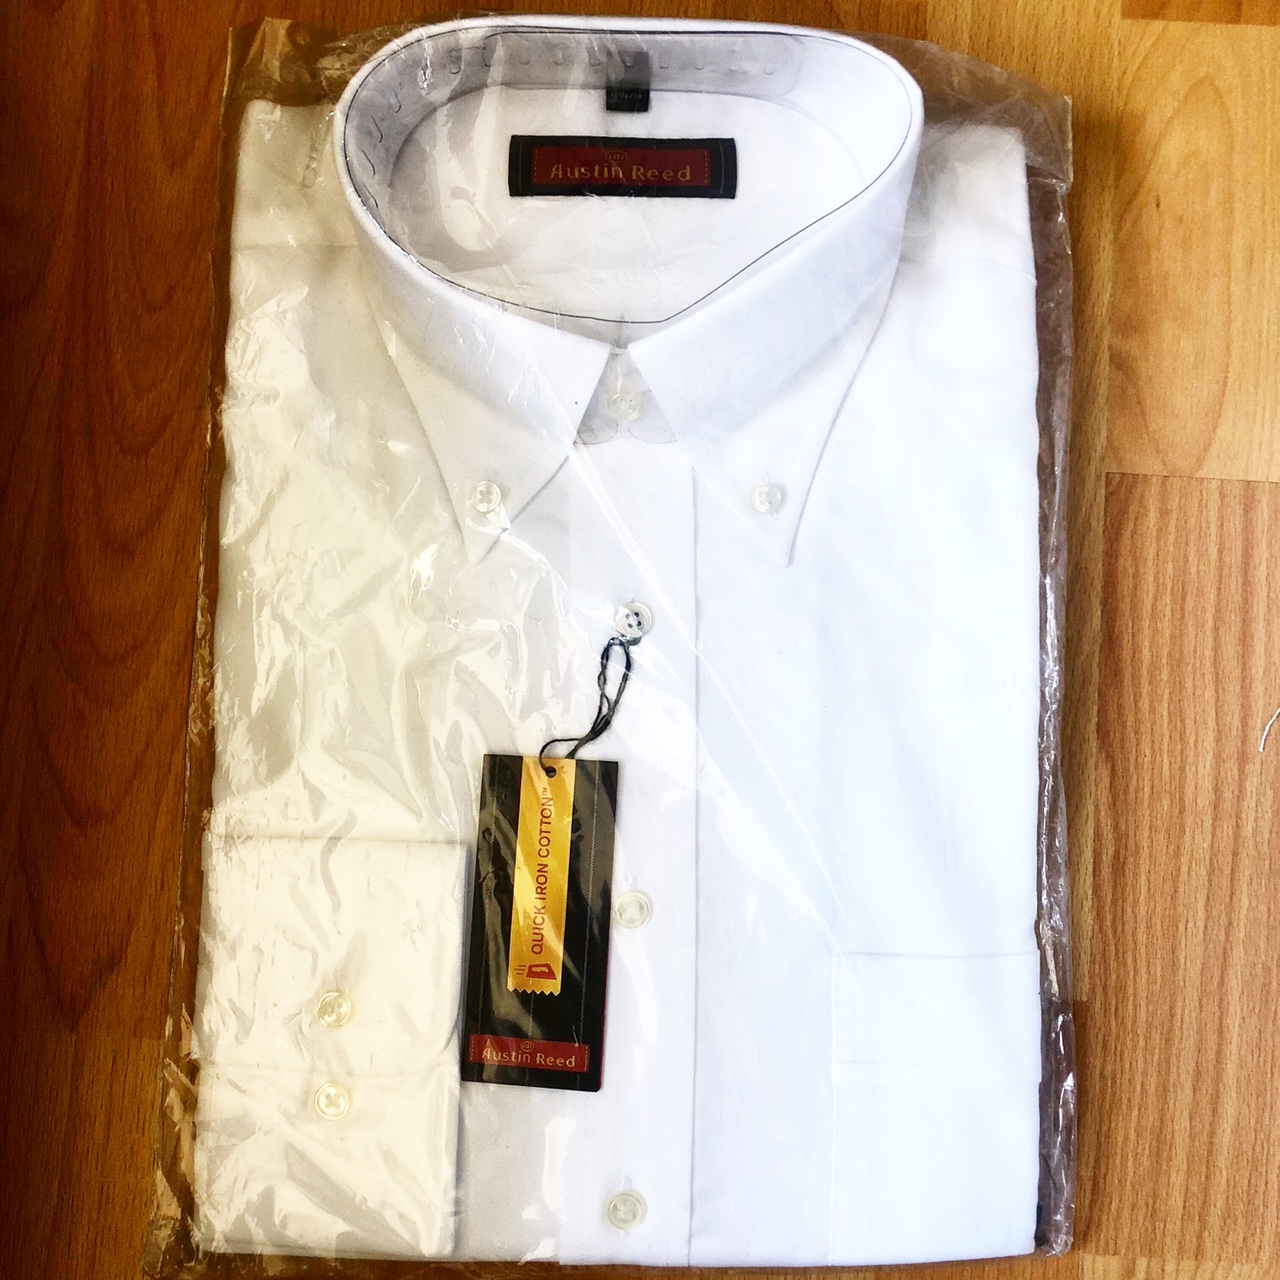 Brand New Austin Reed Mens White Shirt Condition Is Depop